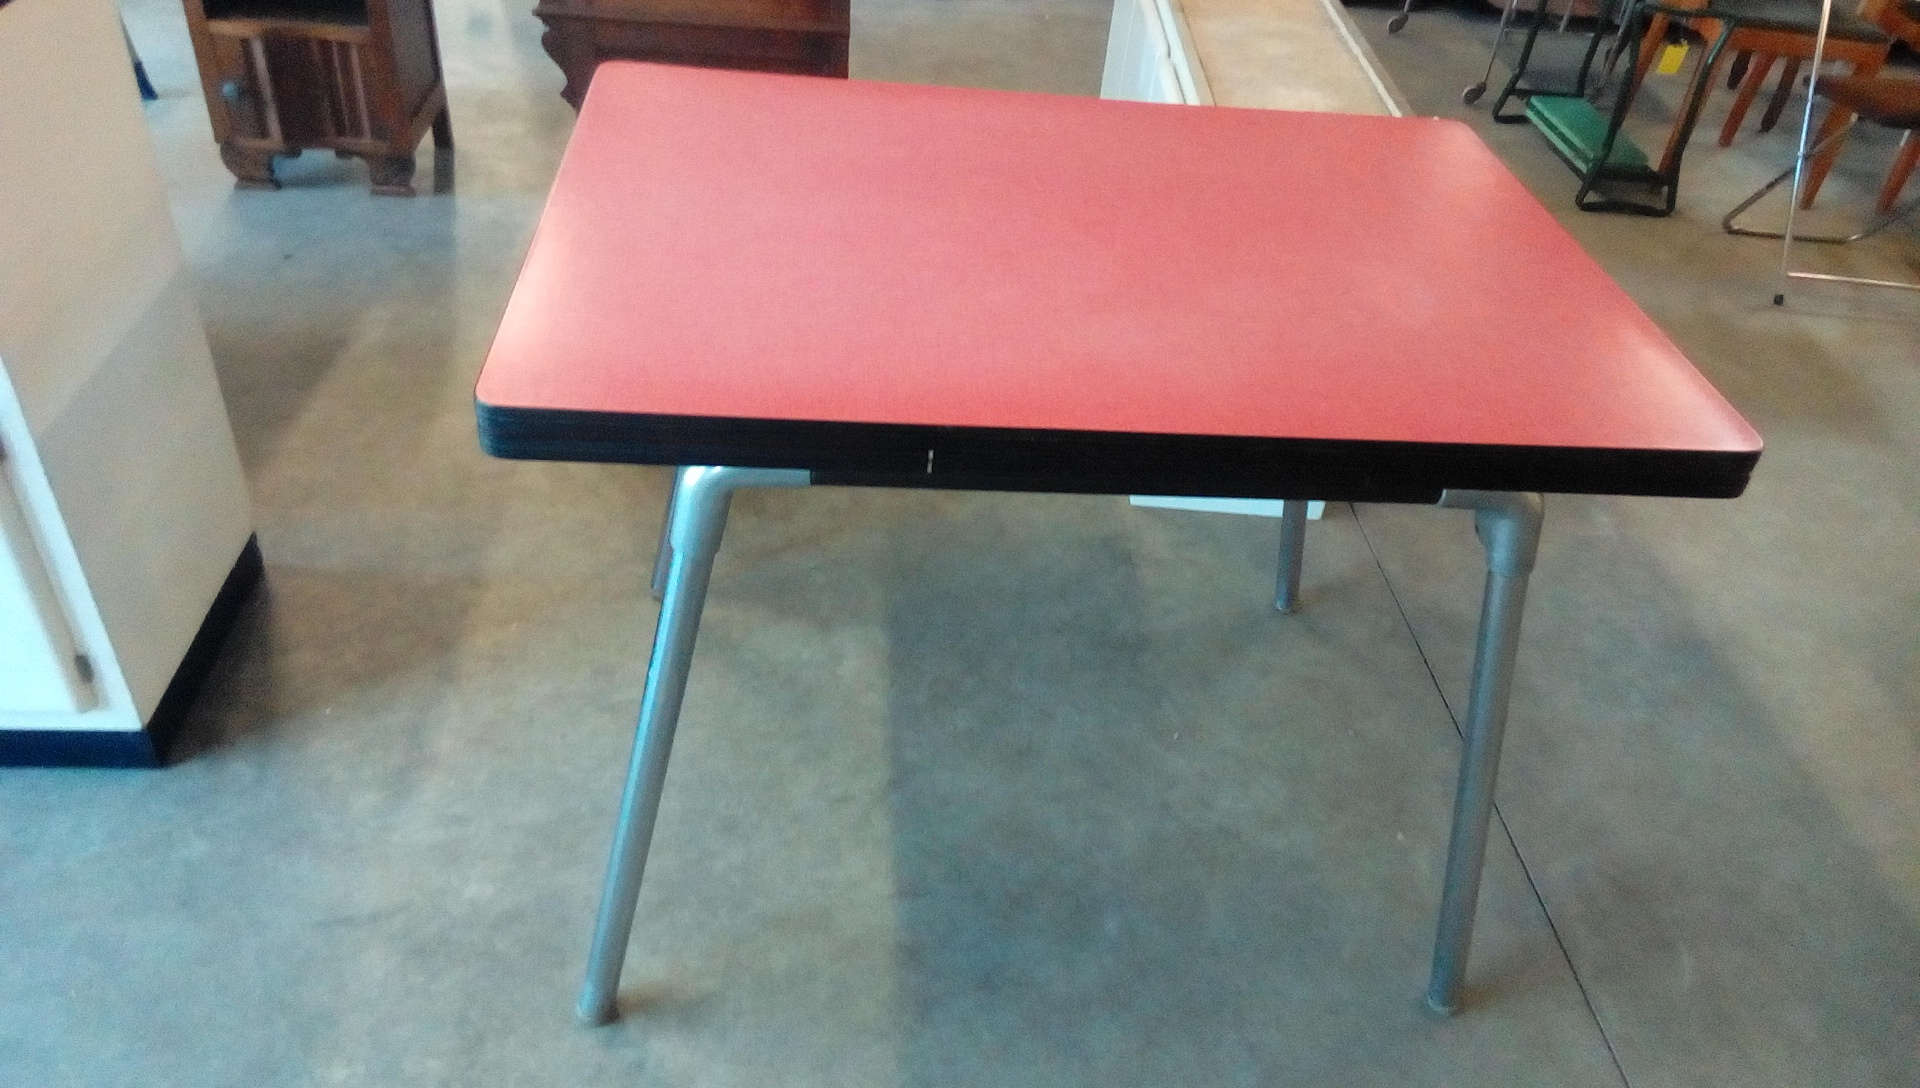 Table Formica Rouge A Rallonges Pieds Metal Occasion Troc Fecamp